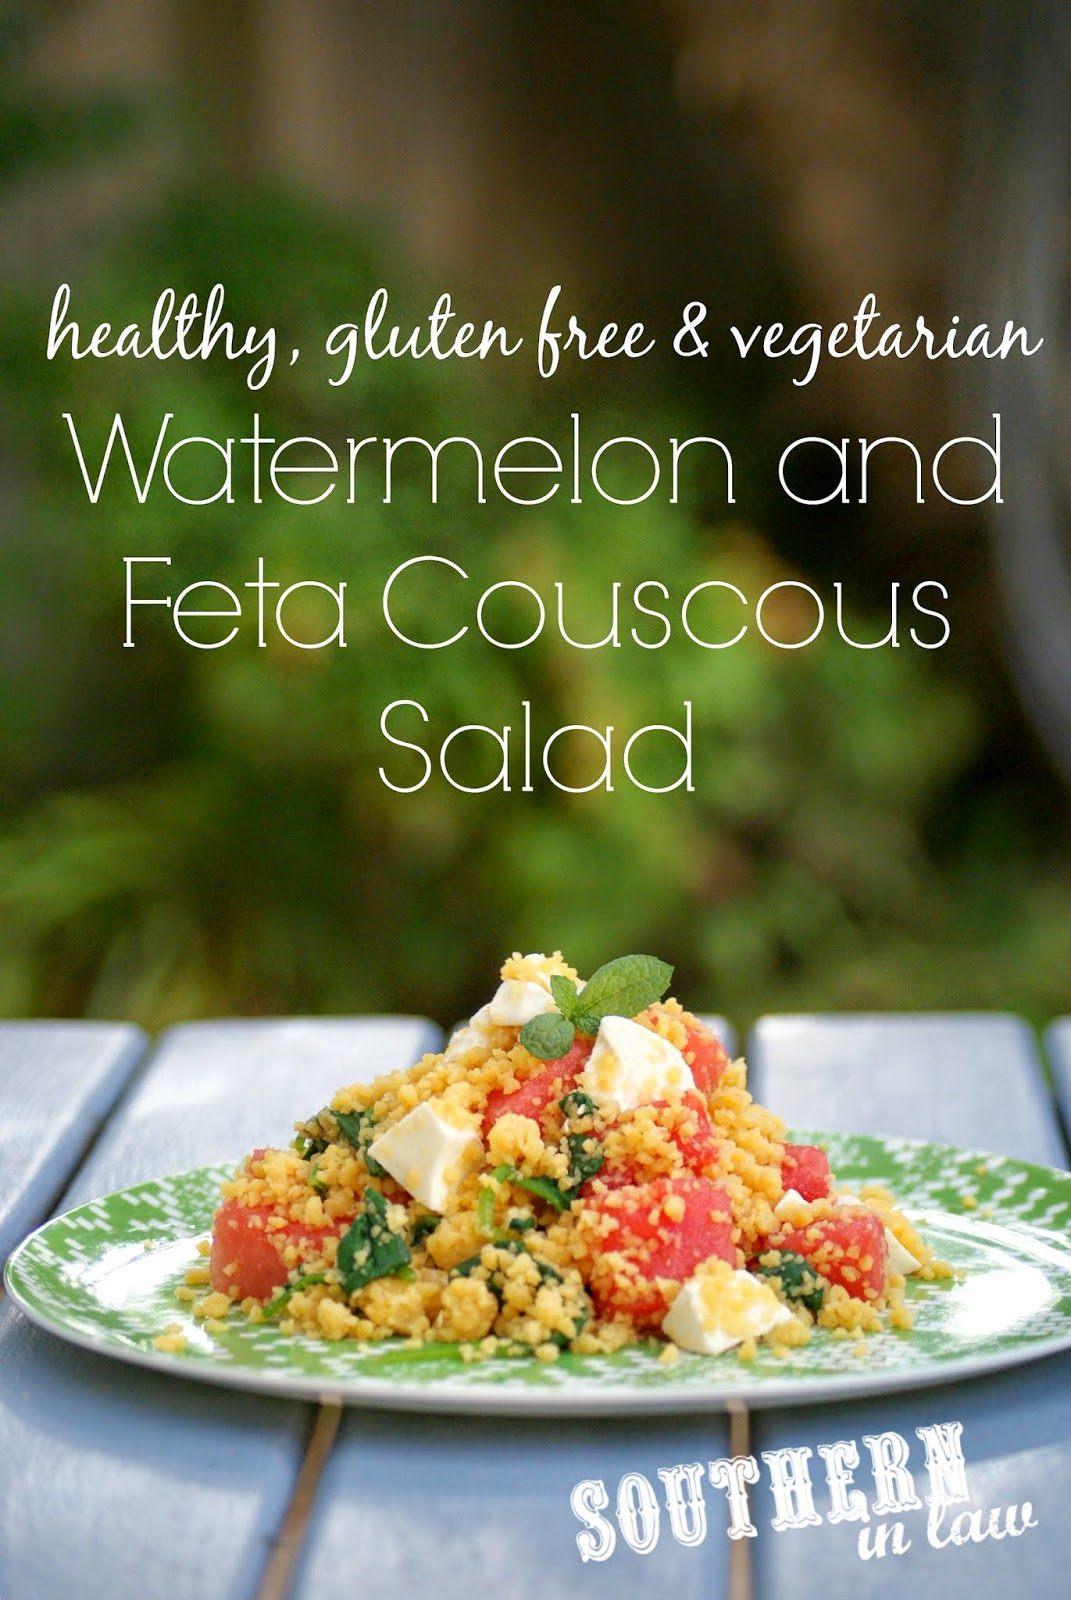 Gluten Free Watermelon and Feta Couscous Salad - Healthy, gluten free, low fat, clean eating friendly